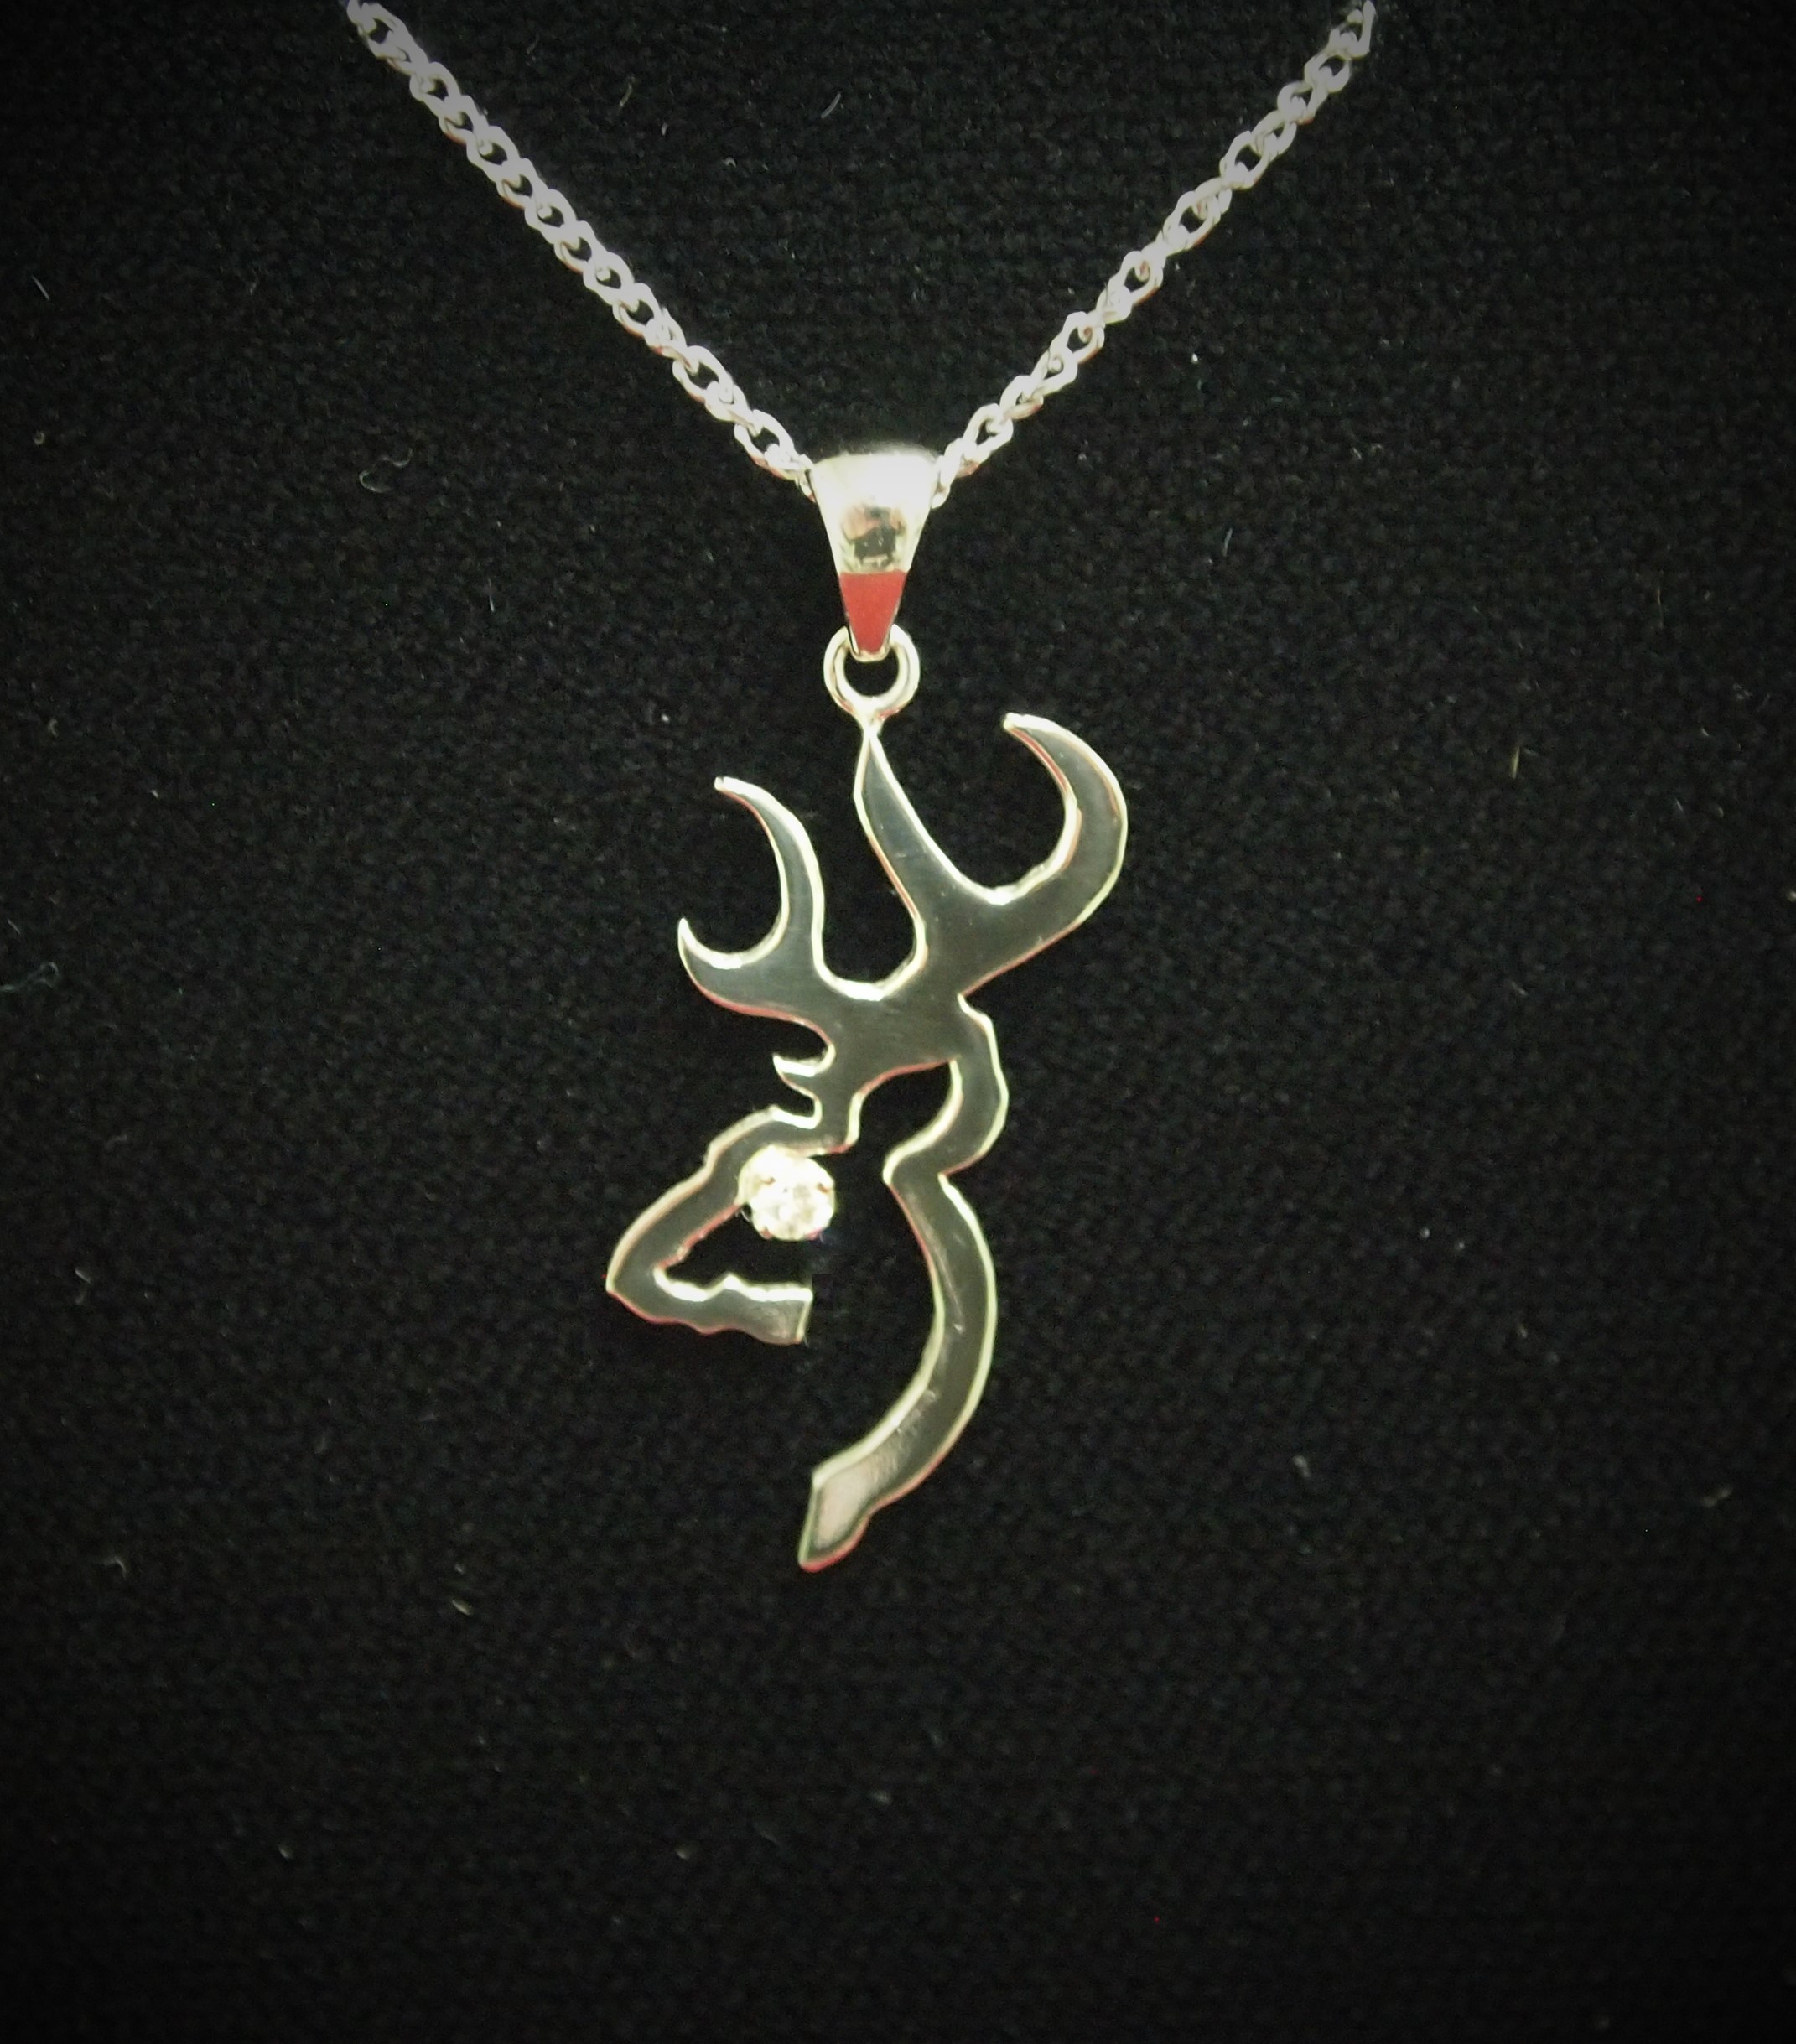 10kt White Gold Browning Pendat